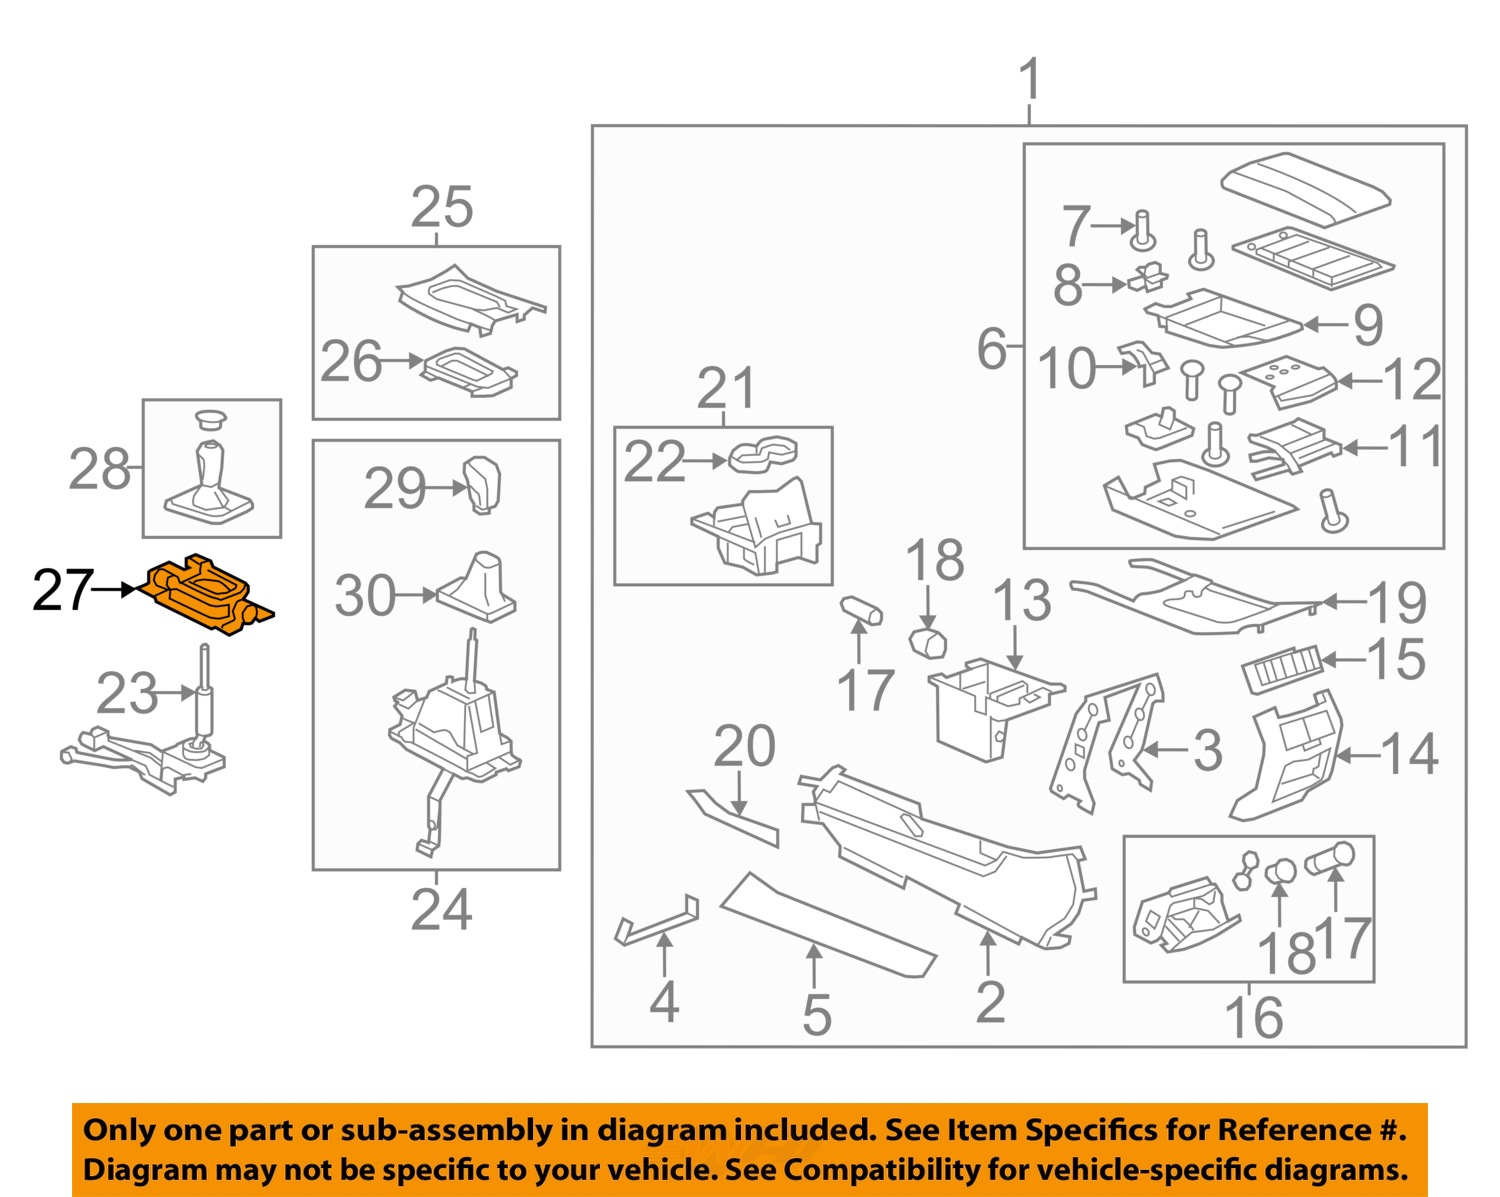 Cadillac Cts Drive Transfer Case Diagram Wiring Will Be A Engine Gmc Drivetrain Free Image For User 2011 2003